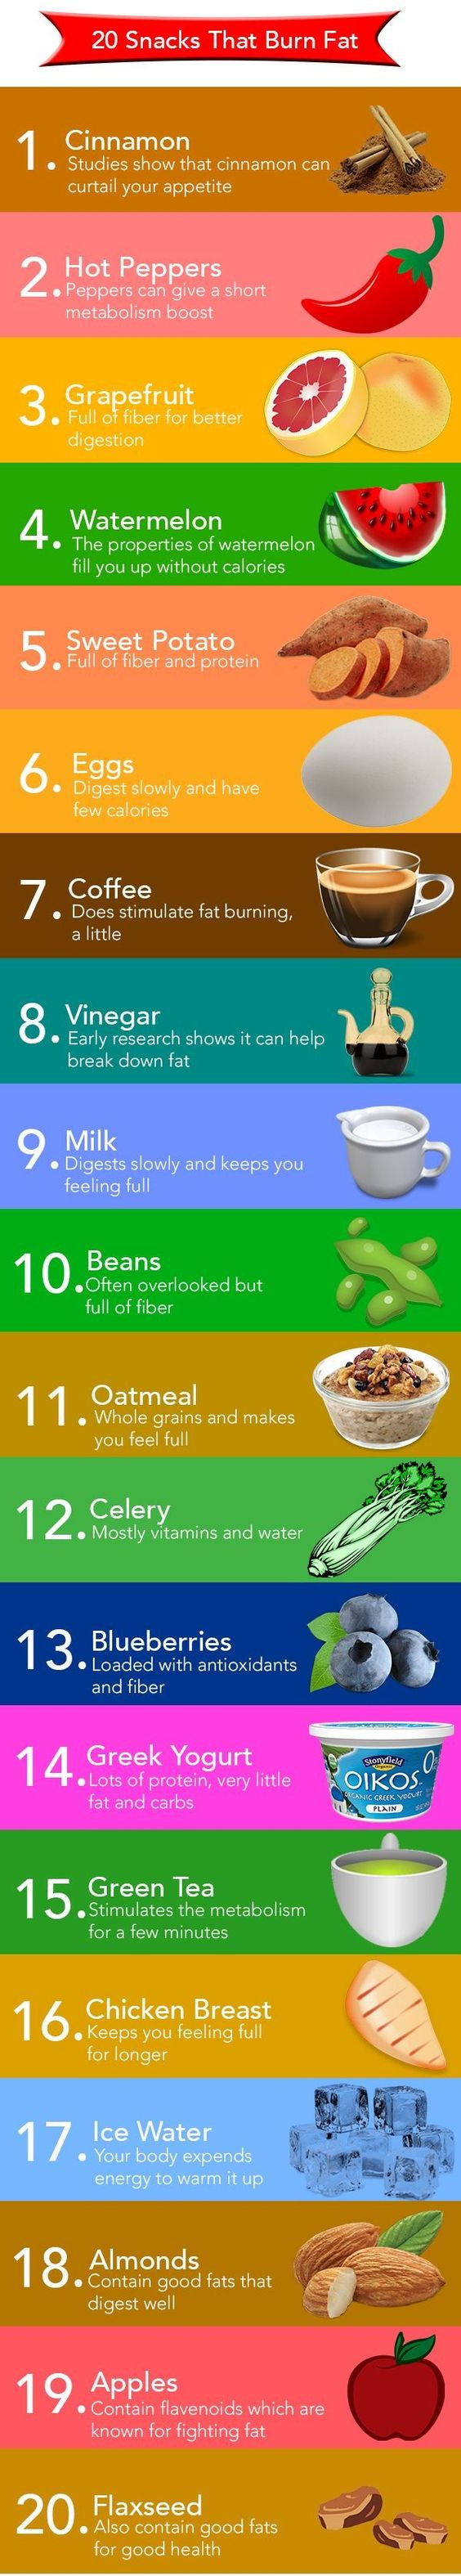 Healthy Fat Burning Snacks  Weight Loss News and Tips 20 Snacks That Burn Fat